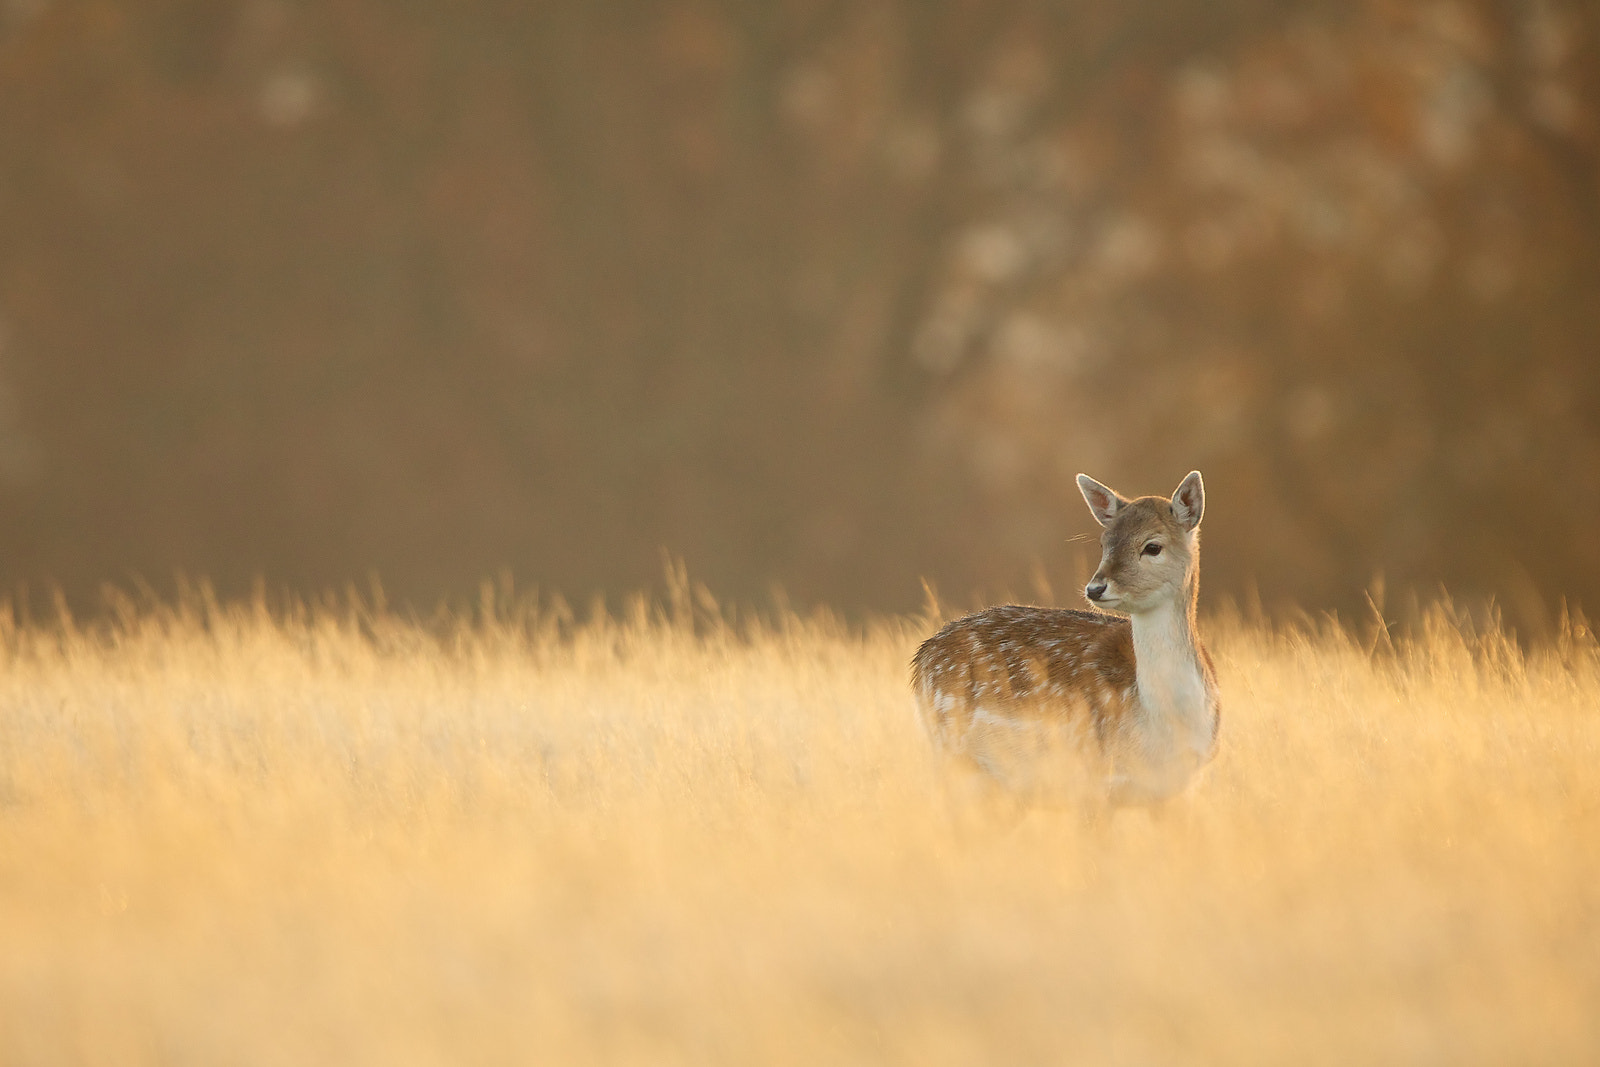 Photograph a little one by Mark Bridger on 500px